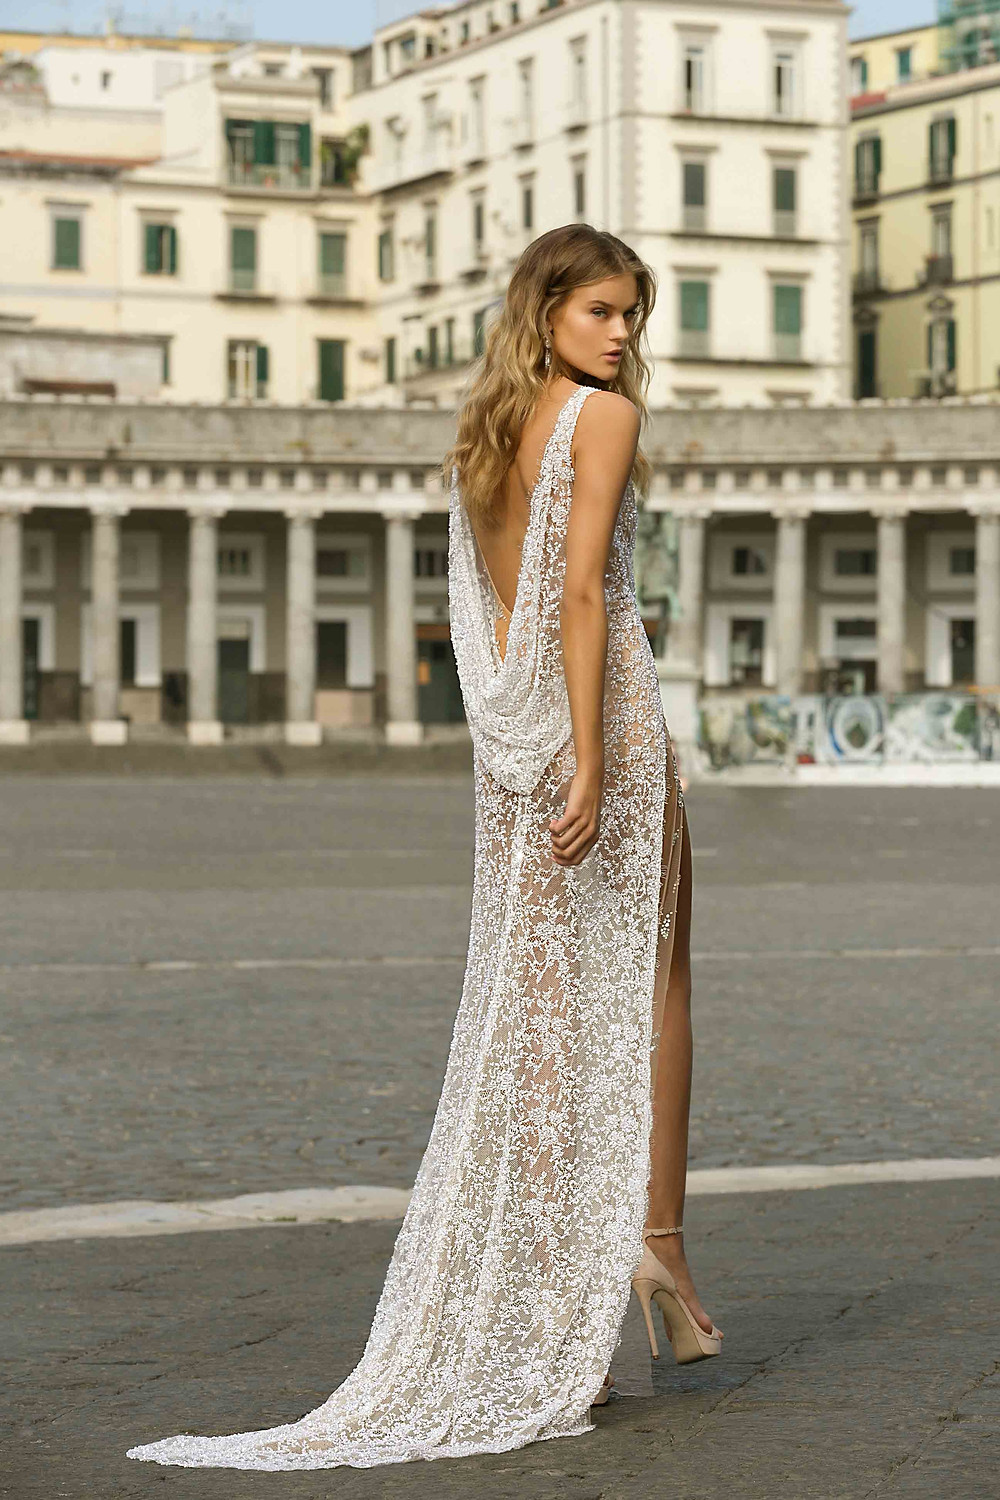 A Berta 2020 lace wedding dress, with a high slit, long train and a cowl back